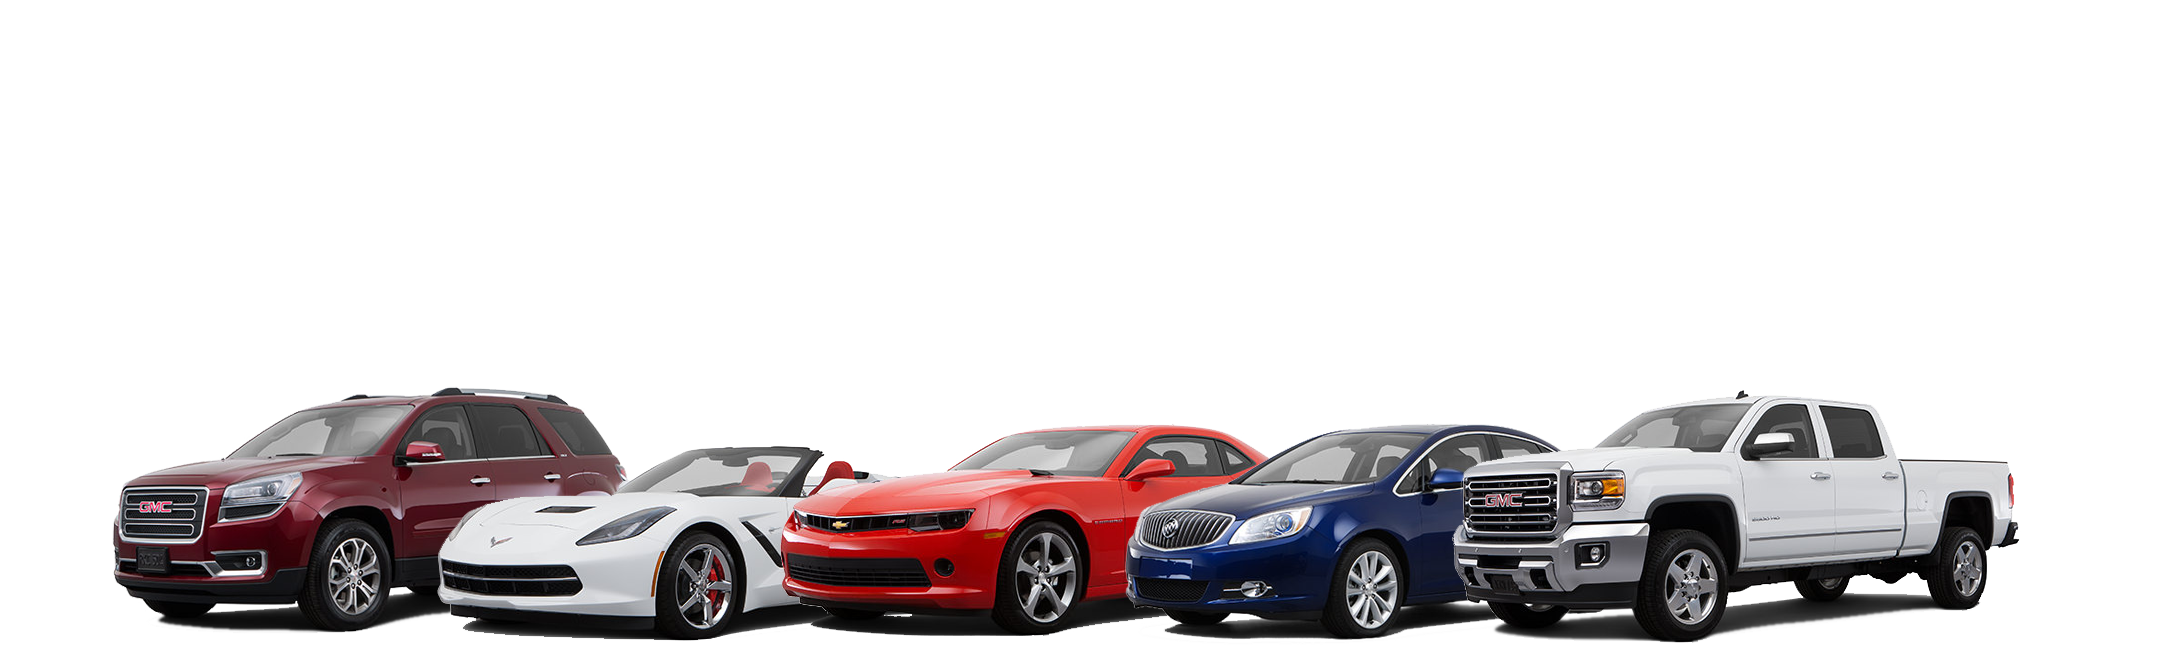 Best Used Car Deals In Los Angeles